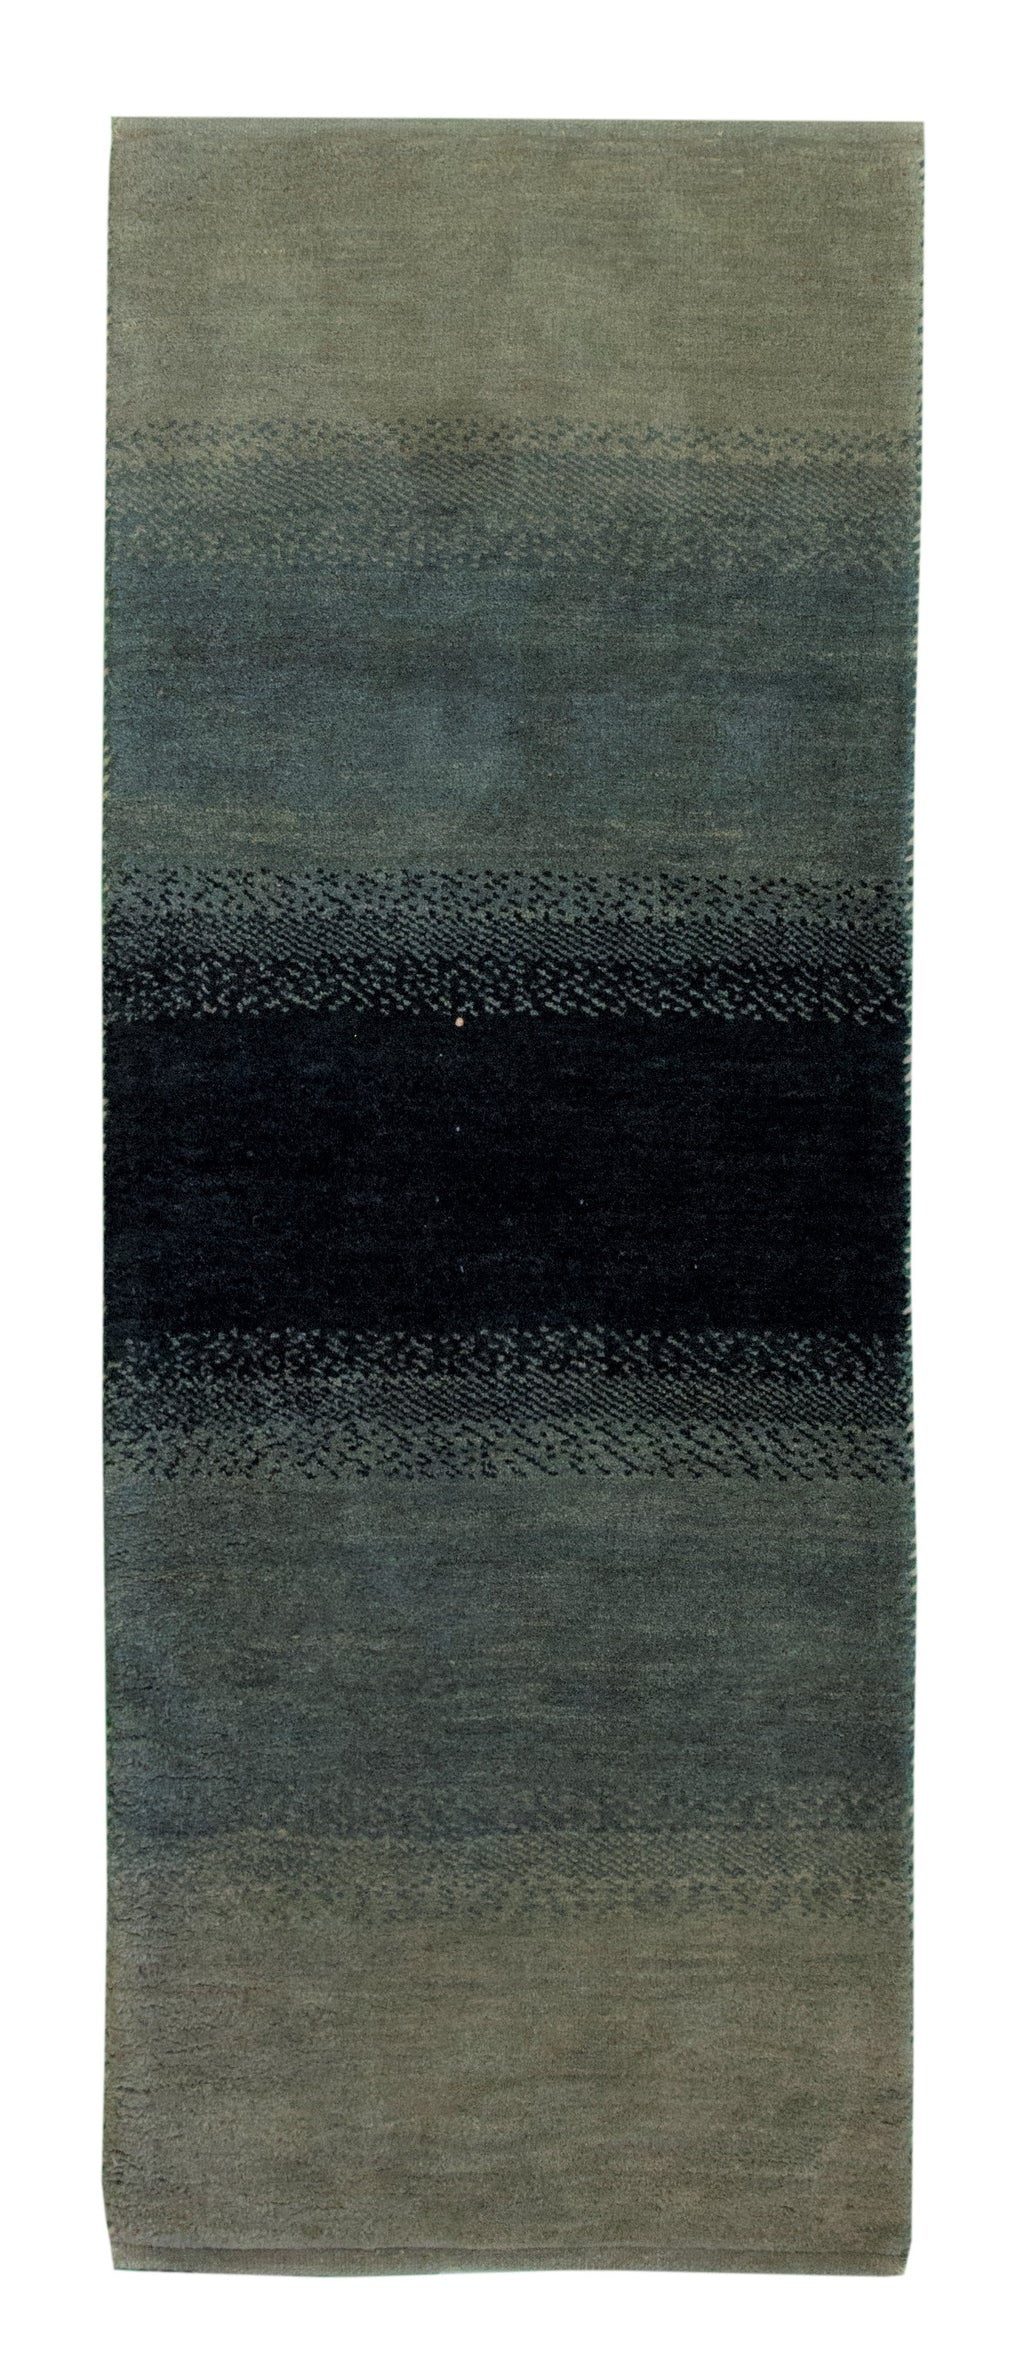 Gabbeh Runner Green 2'8x6'11